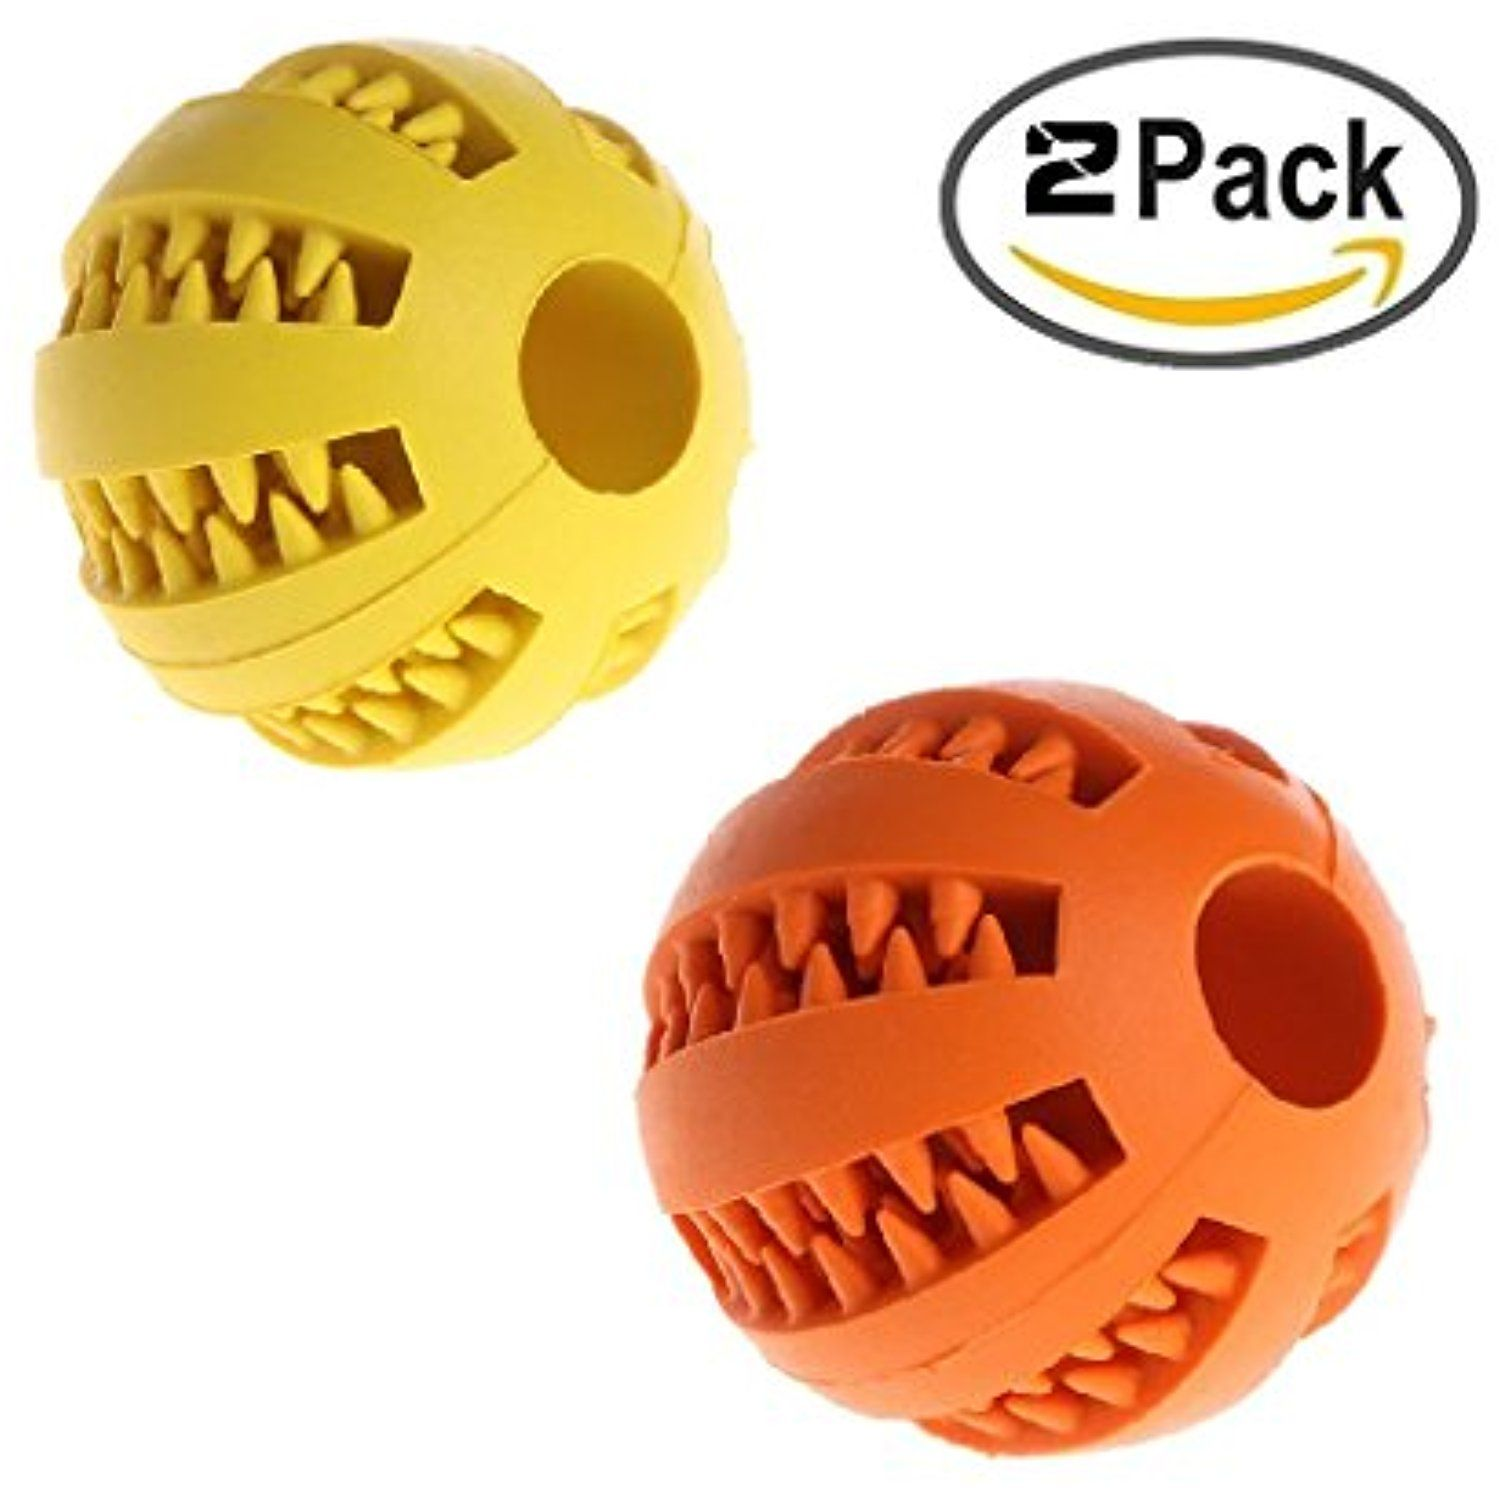 Yumian Dog Chew Toy Ball Nontoxic Bite Resistant Toy Ball For Pet